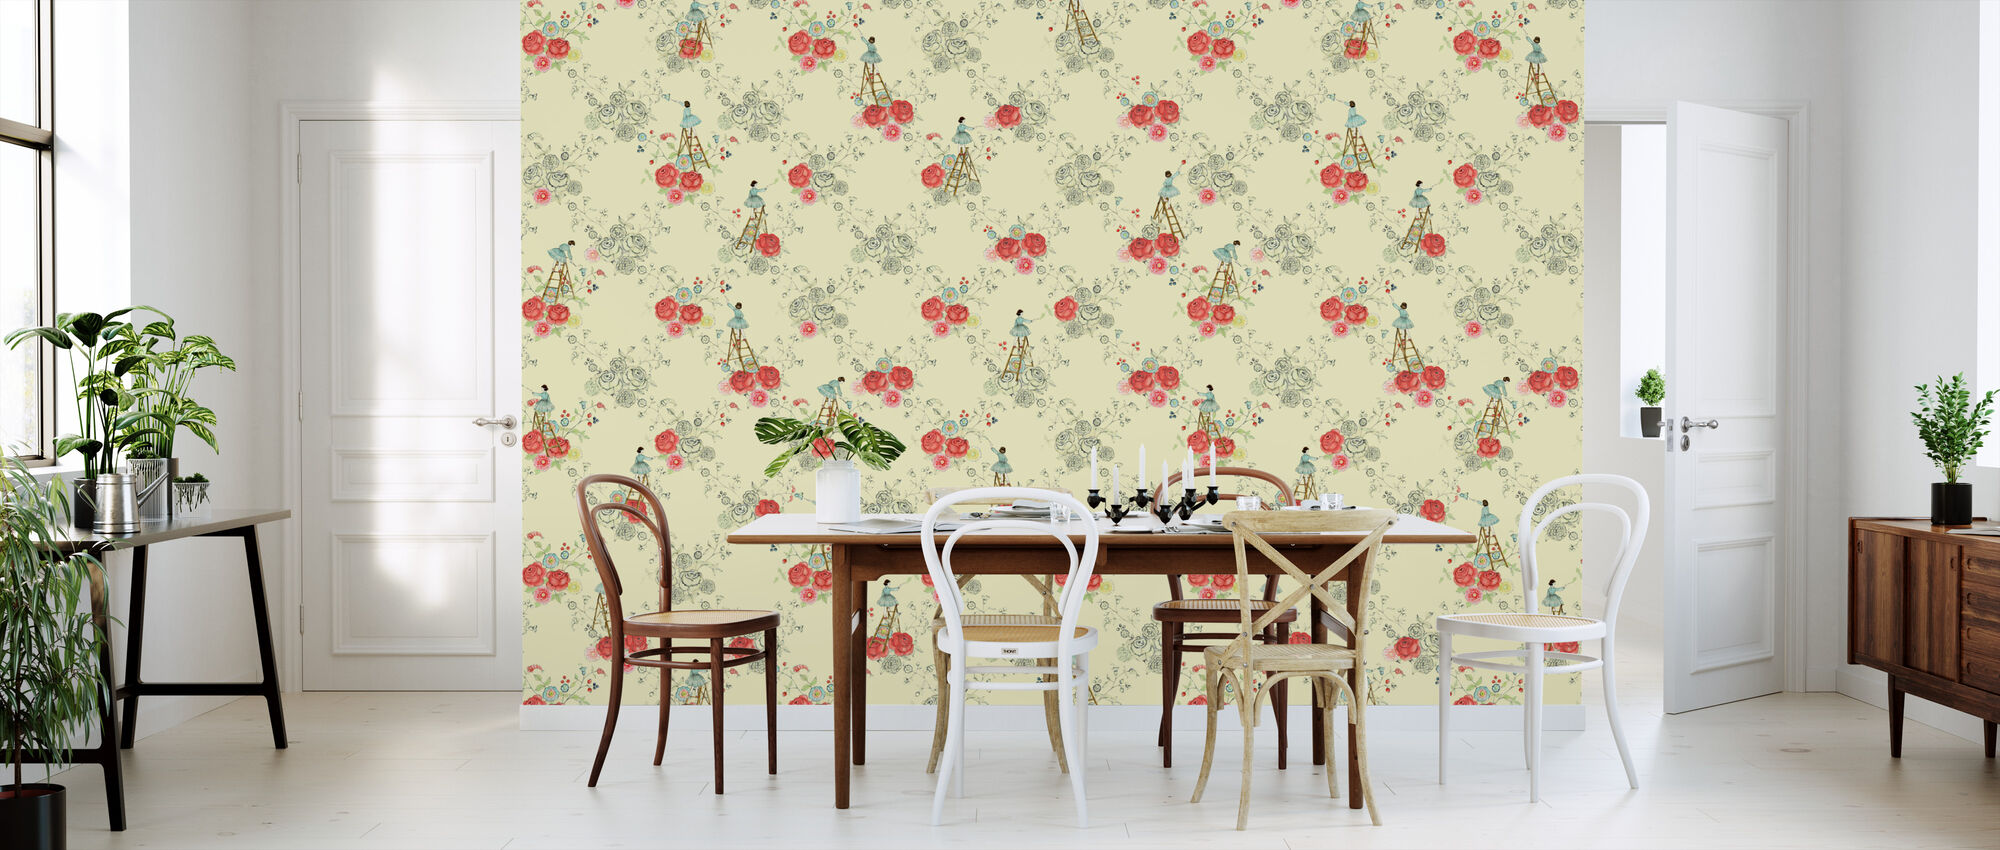 Rose Colouring - Wallpaper - Kitchen